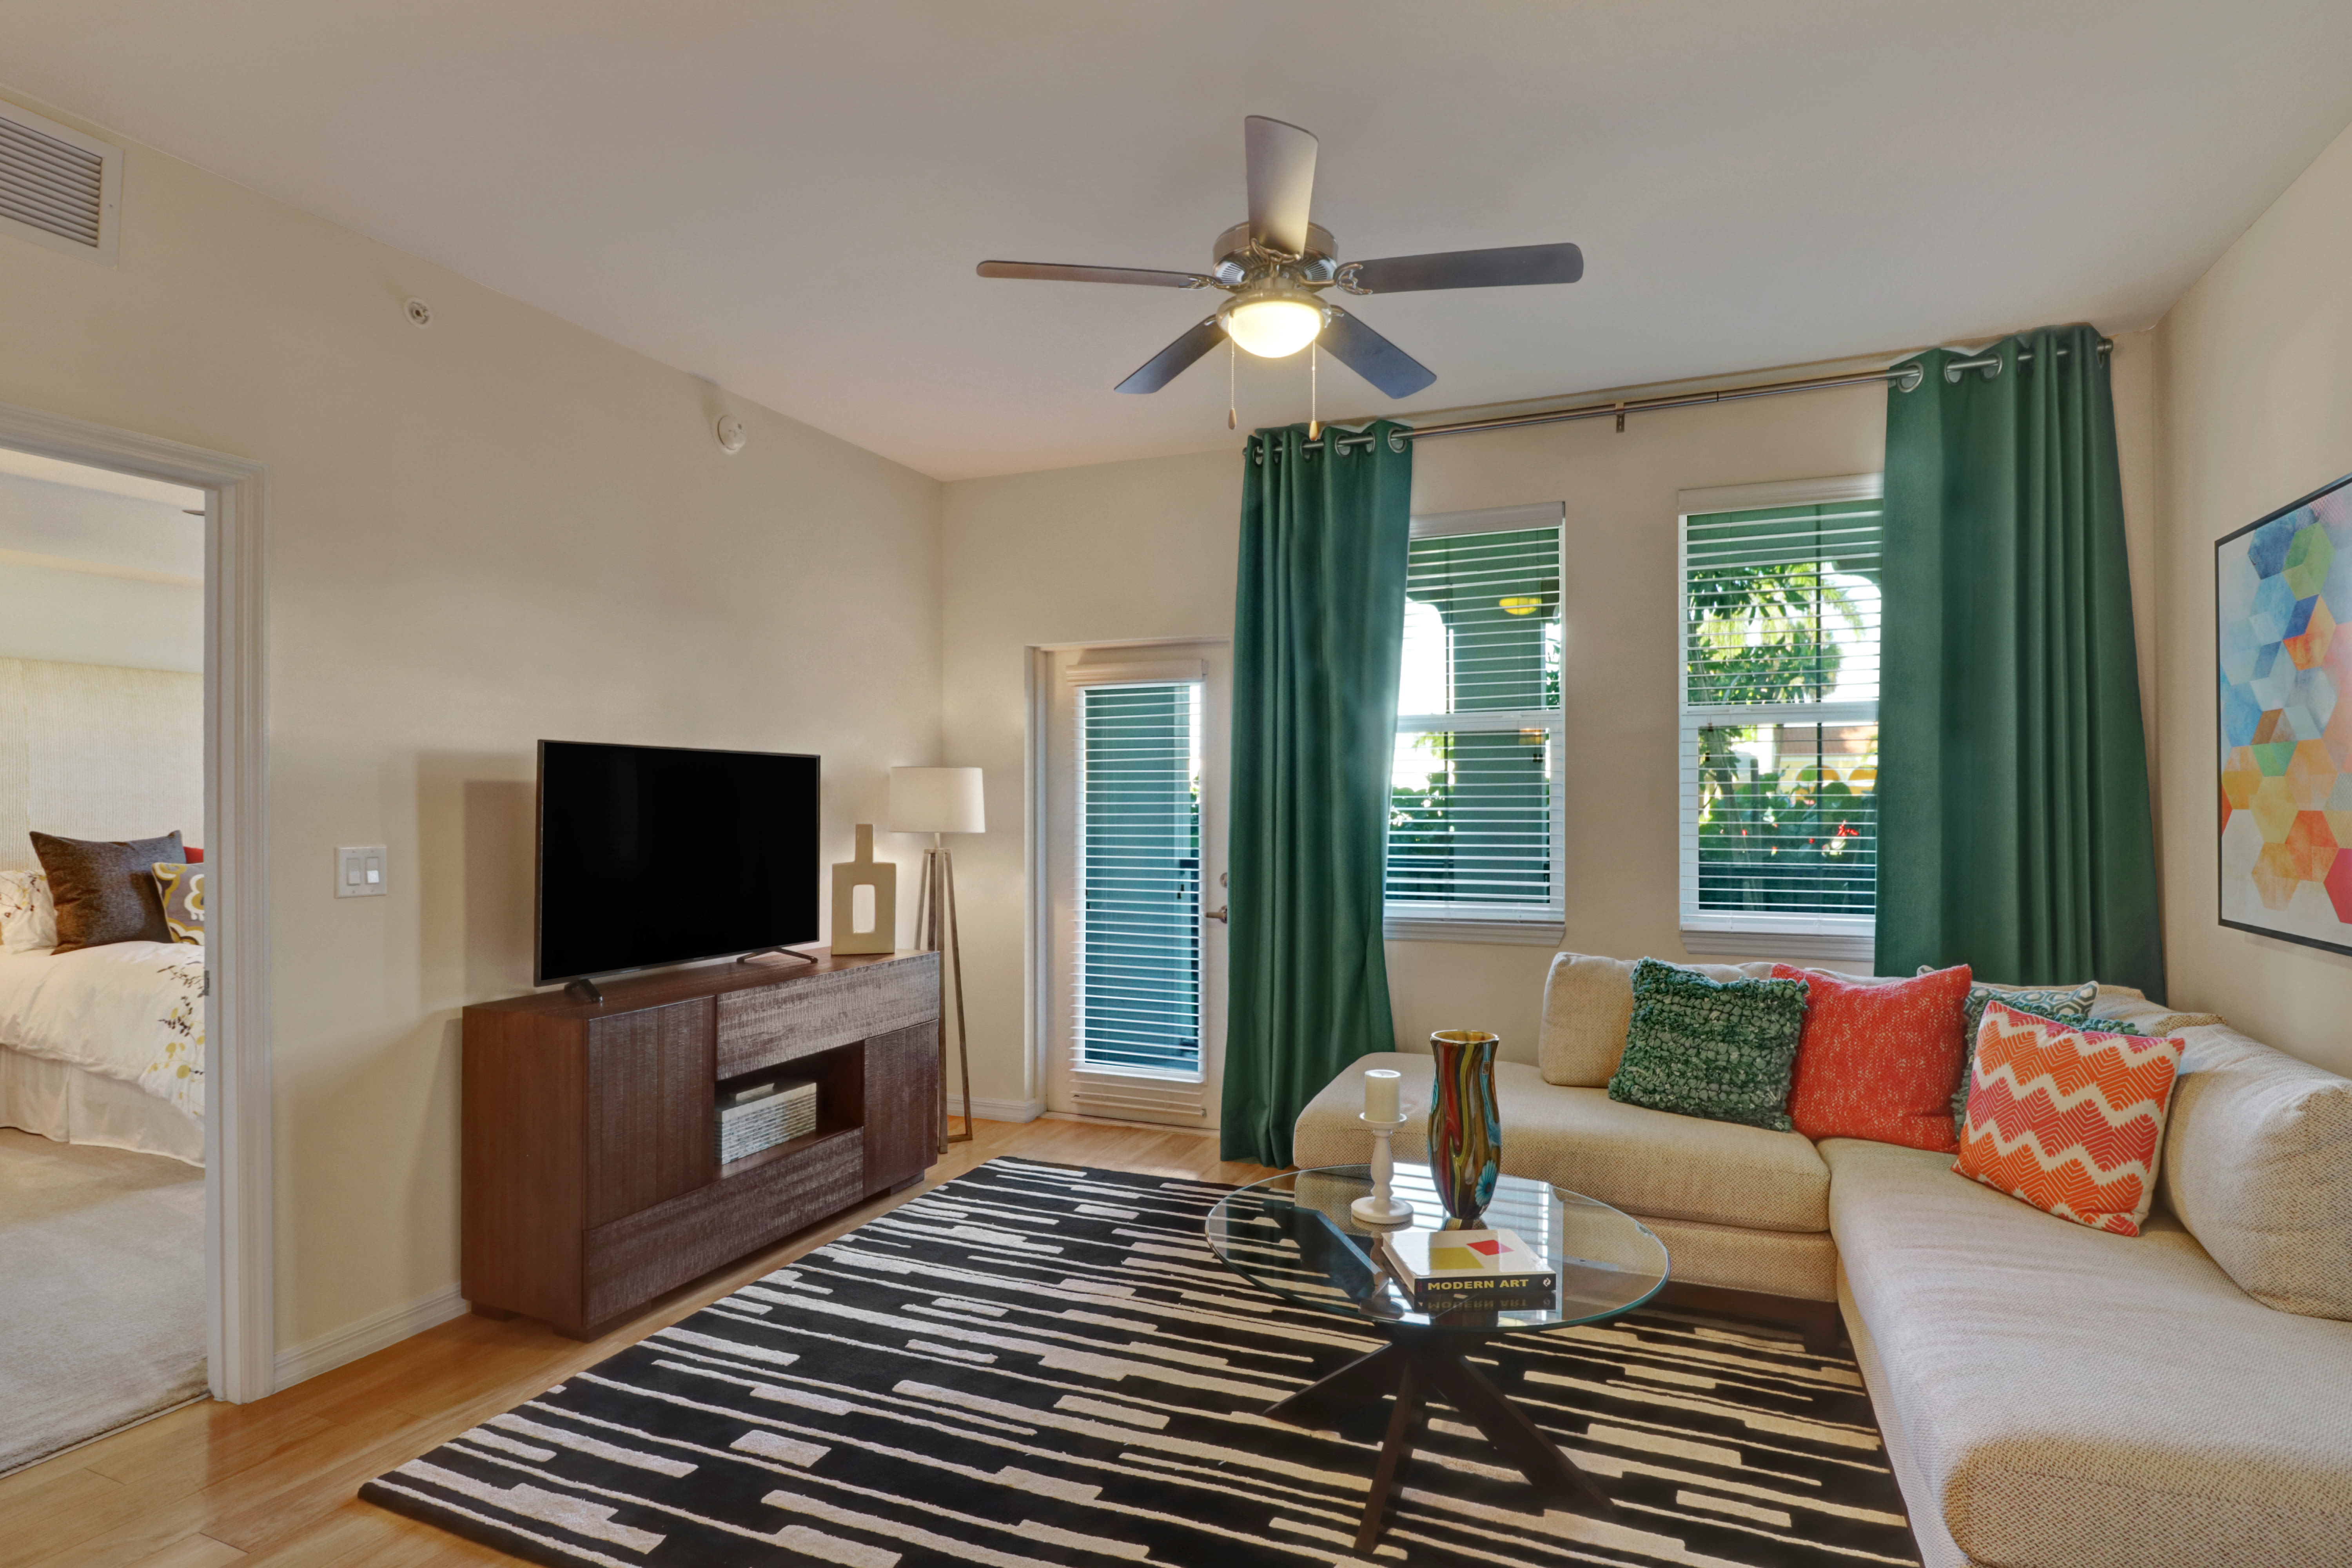 Living room featuring big windows in hardwood flooring at Linden Pointe in Pompano Beach, Florida